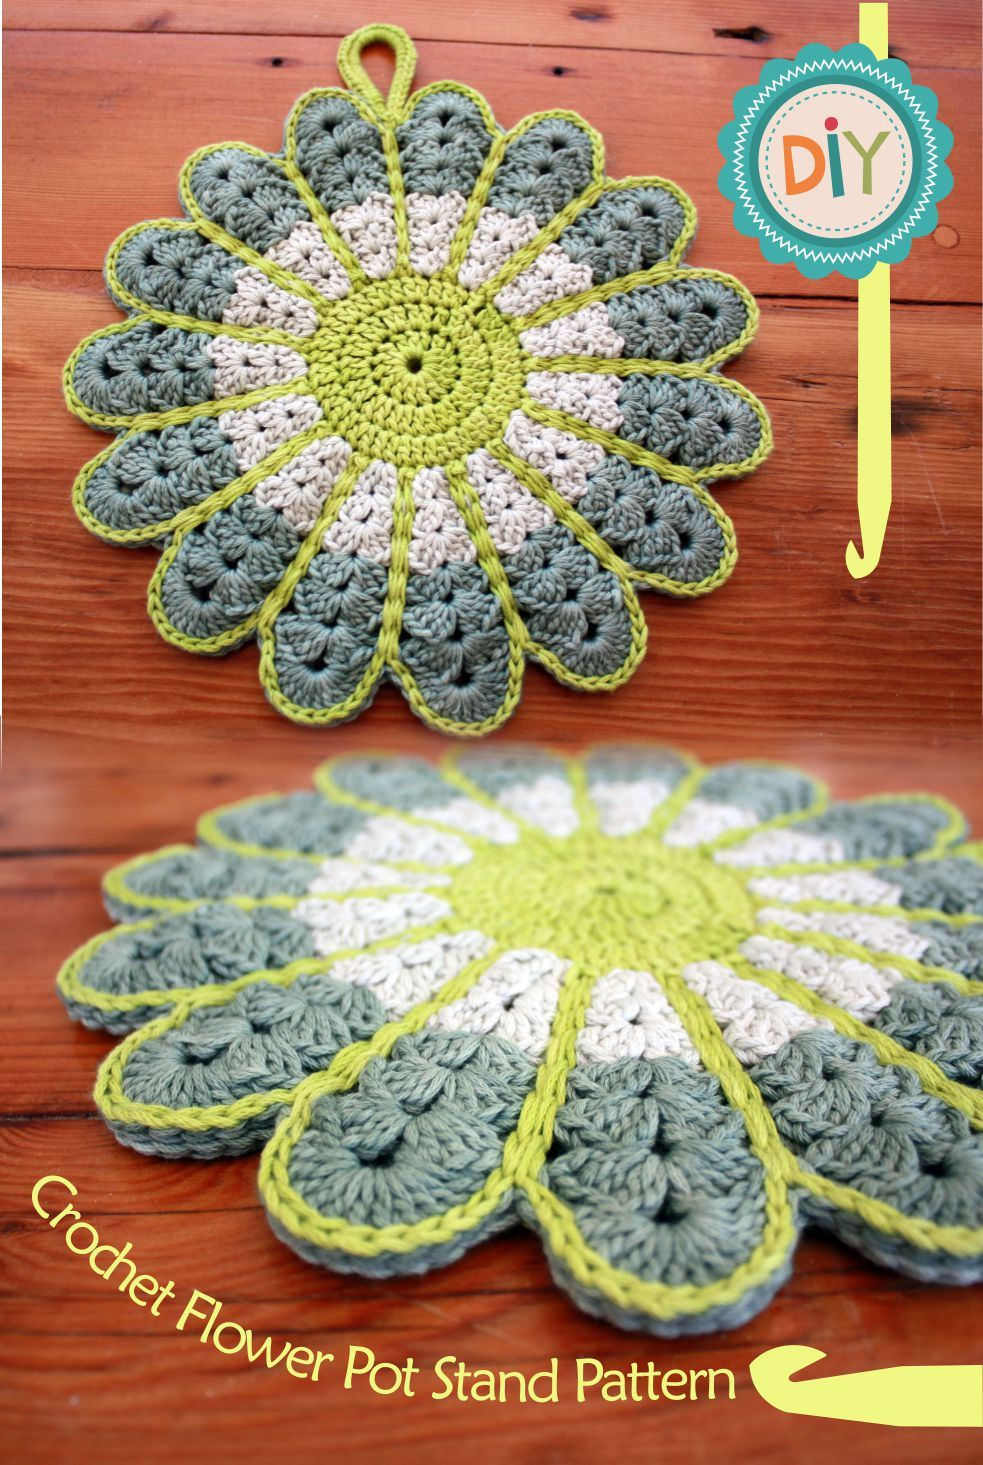 Crochet Trivets Free Pattern Colorful Crochet Flower Pot Holder With Free Pattern Pinterest